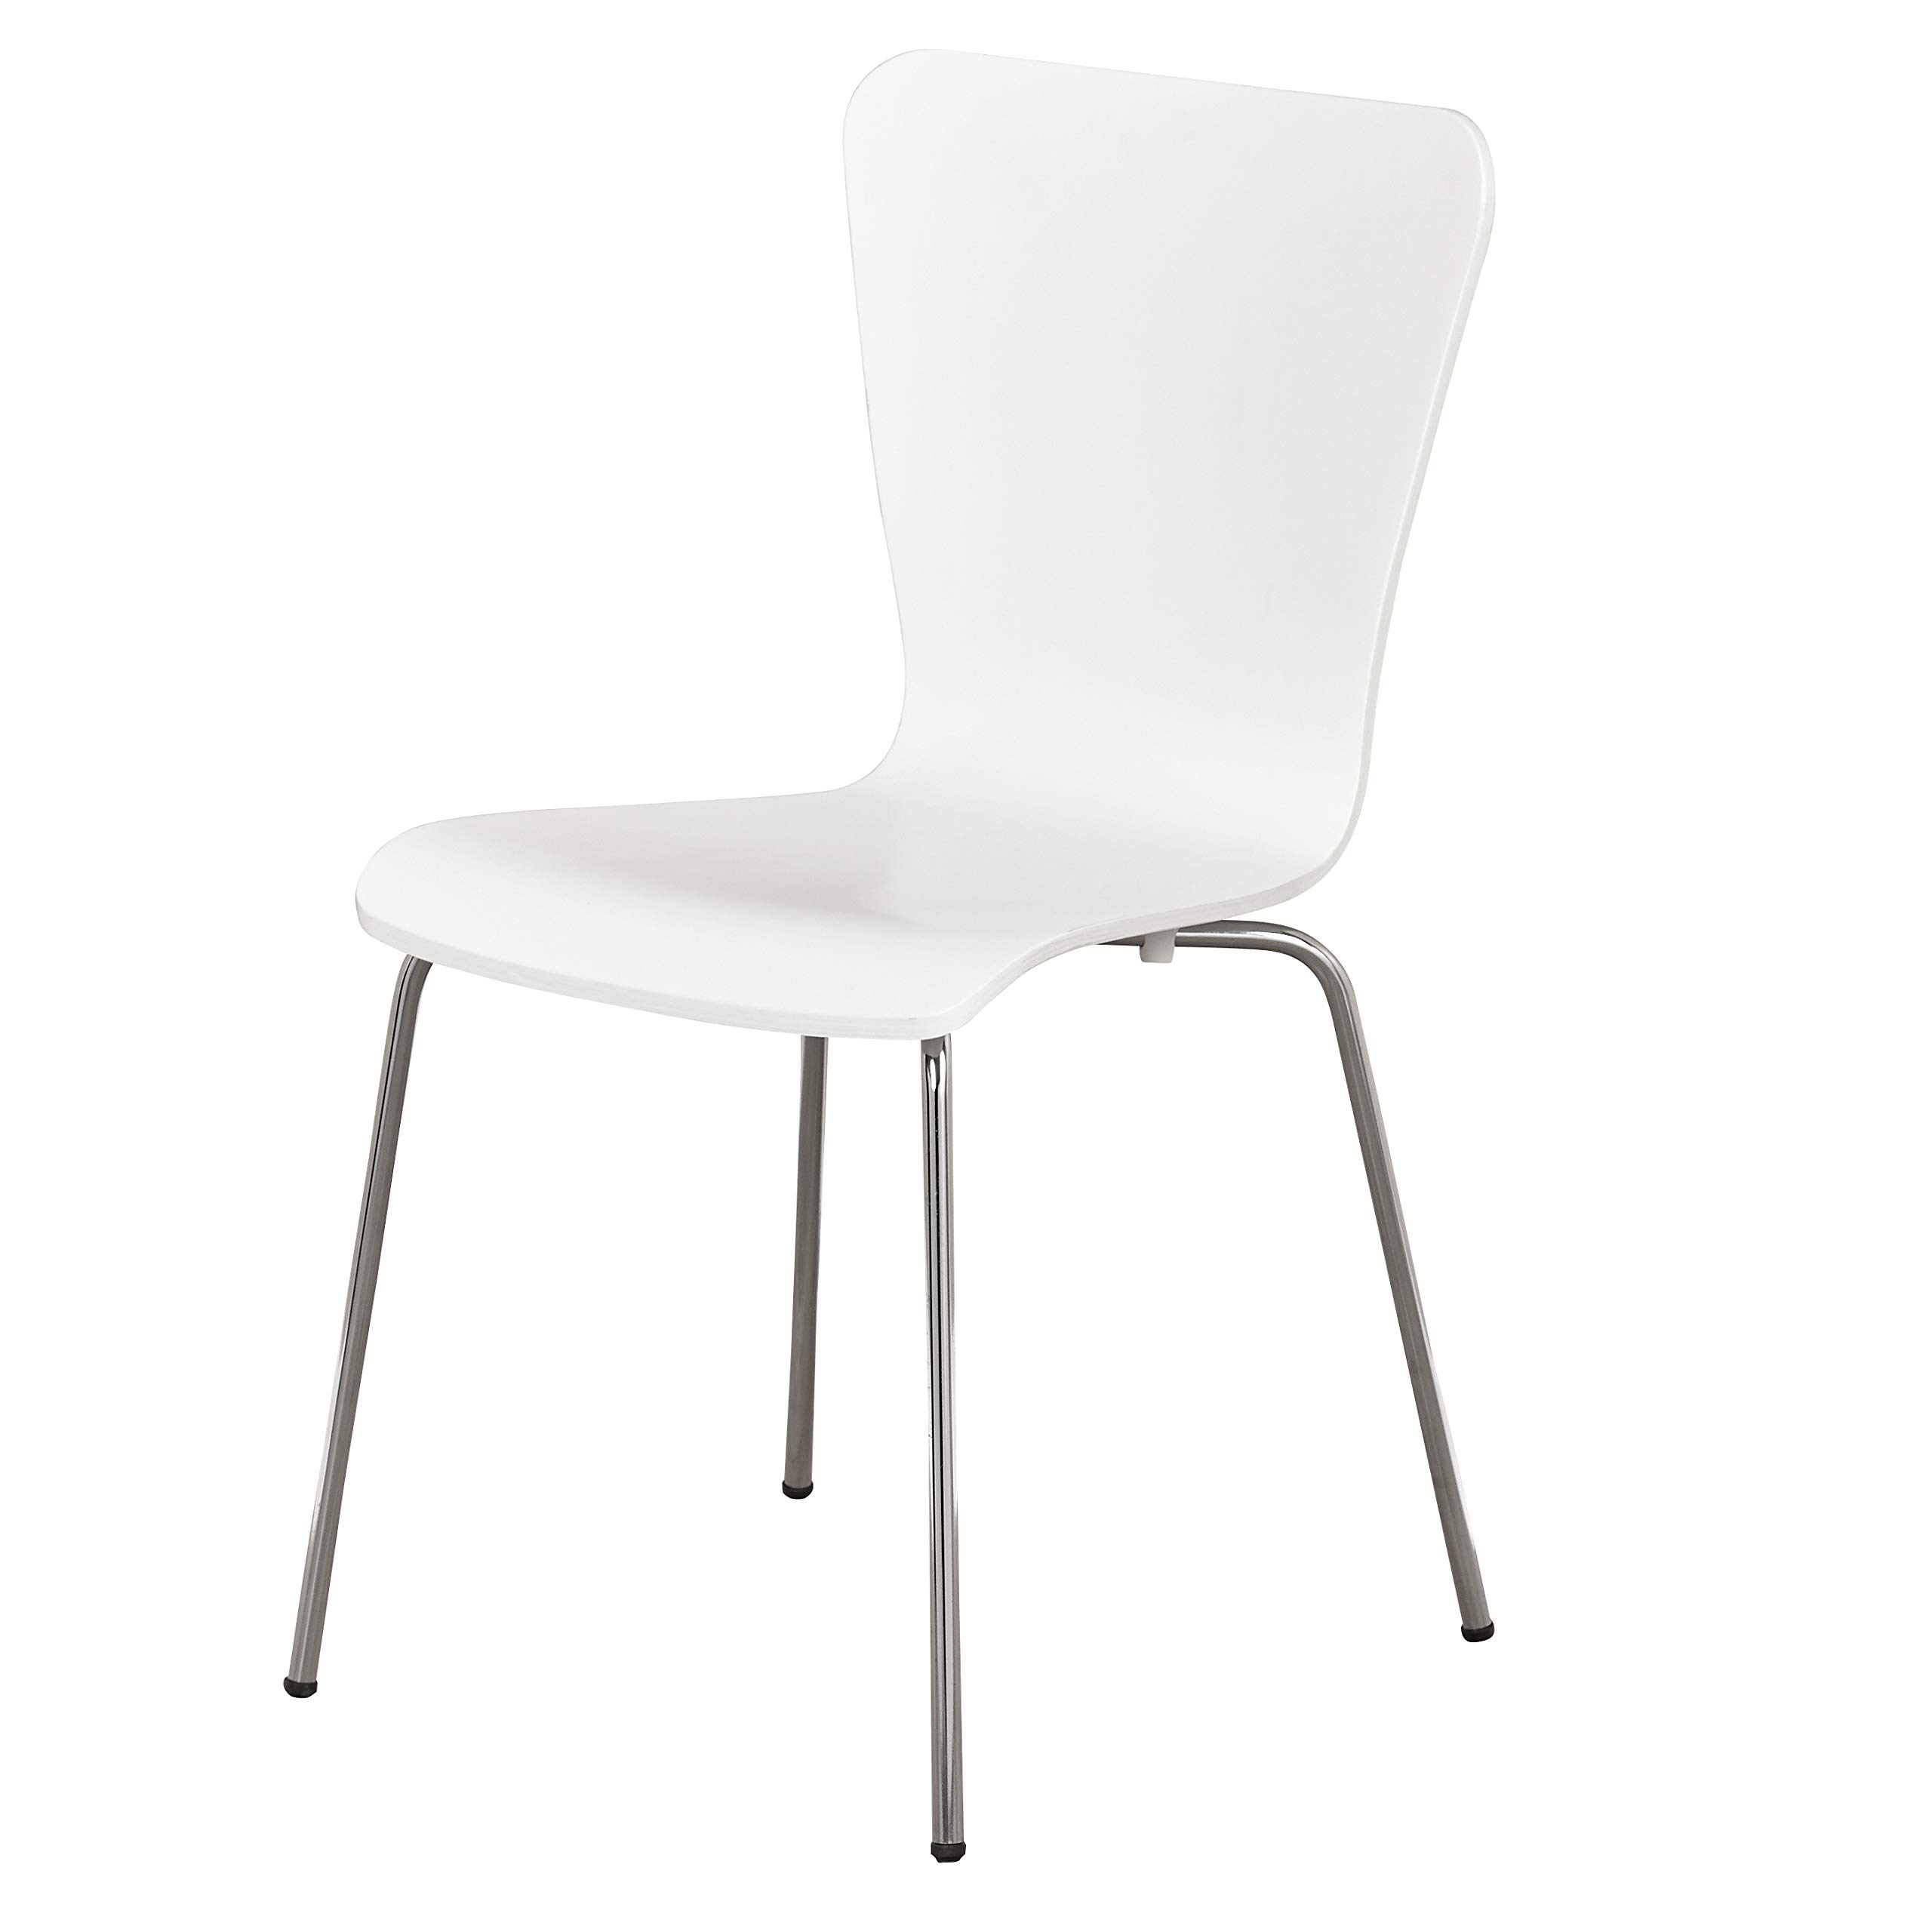 The Mezzanine Shoppe 78818WHT Jacey Modern Bentwood Dining, 1 Chair, White by The Mezzanine Shoppe